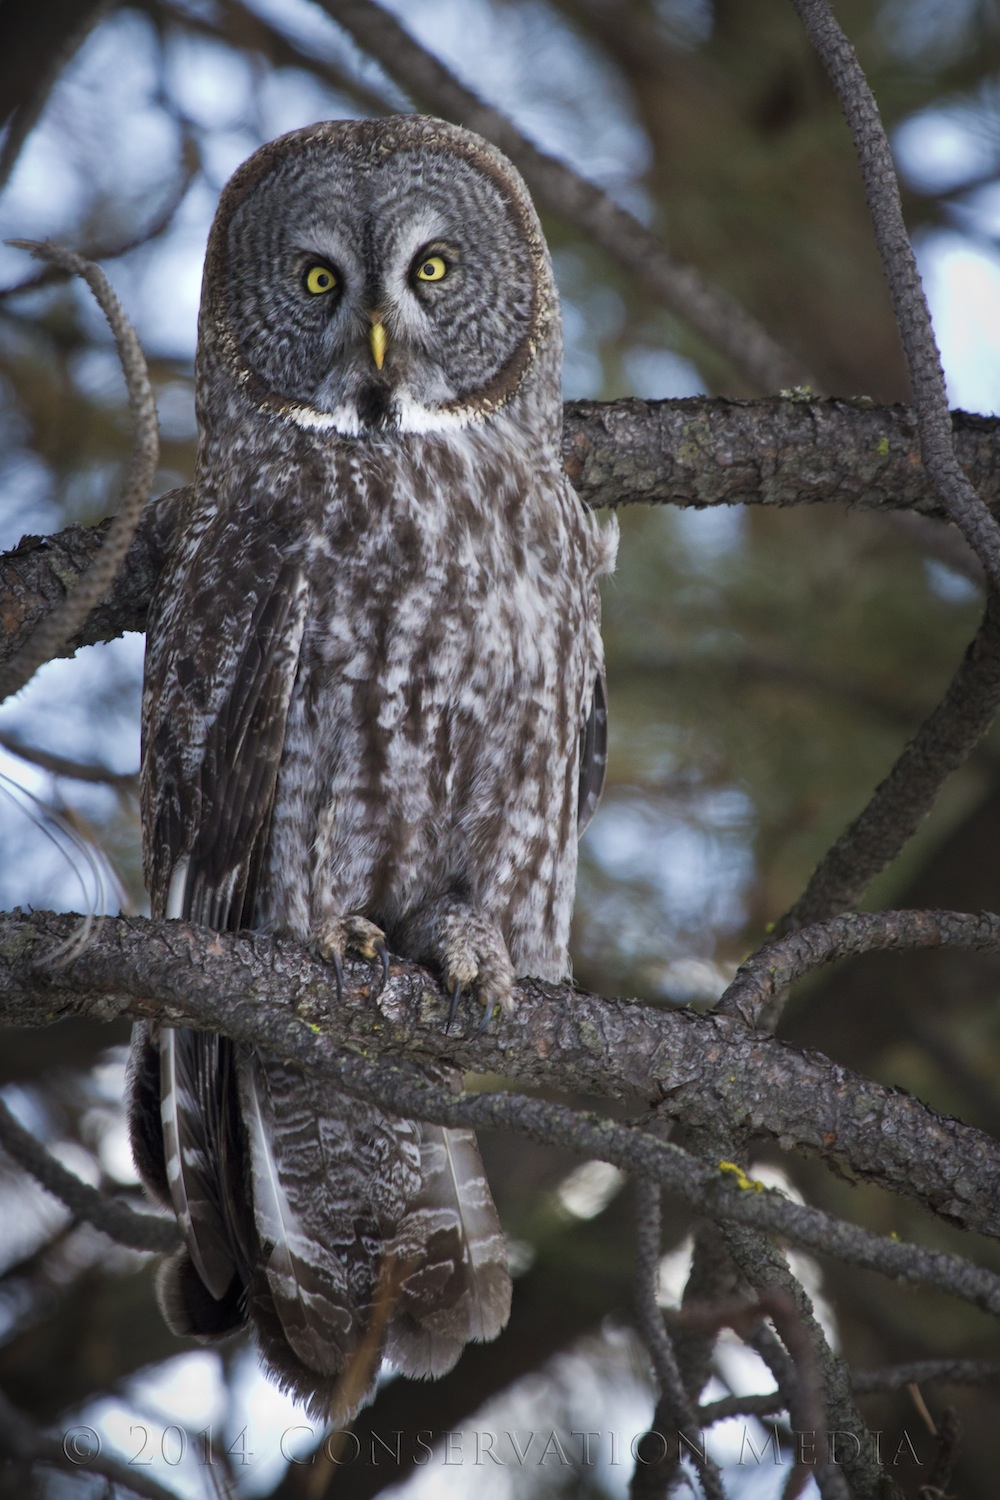 The Penetrating Eyes of the Great Gray Owl